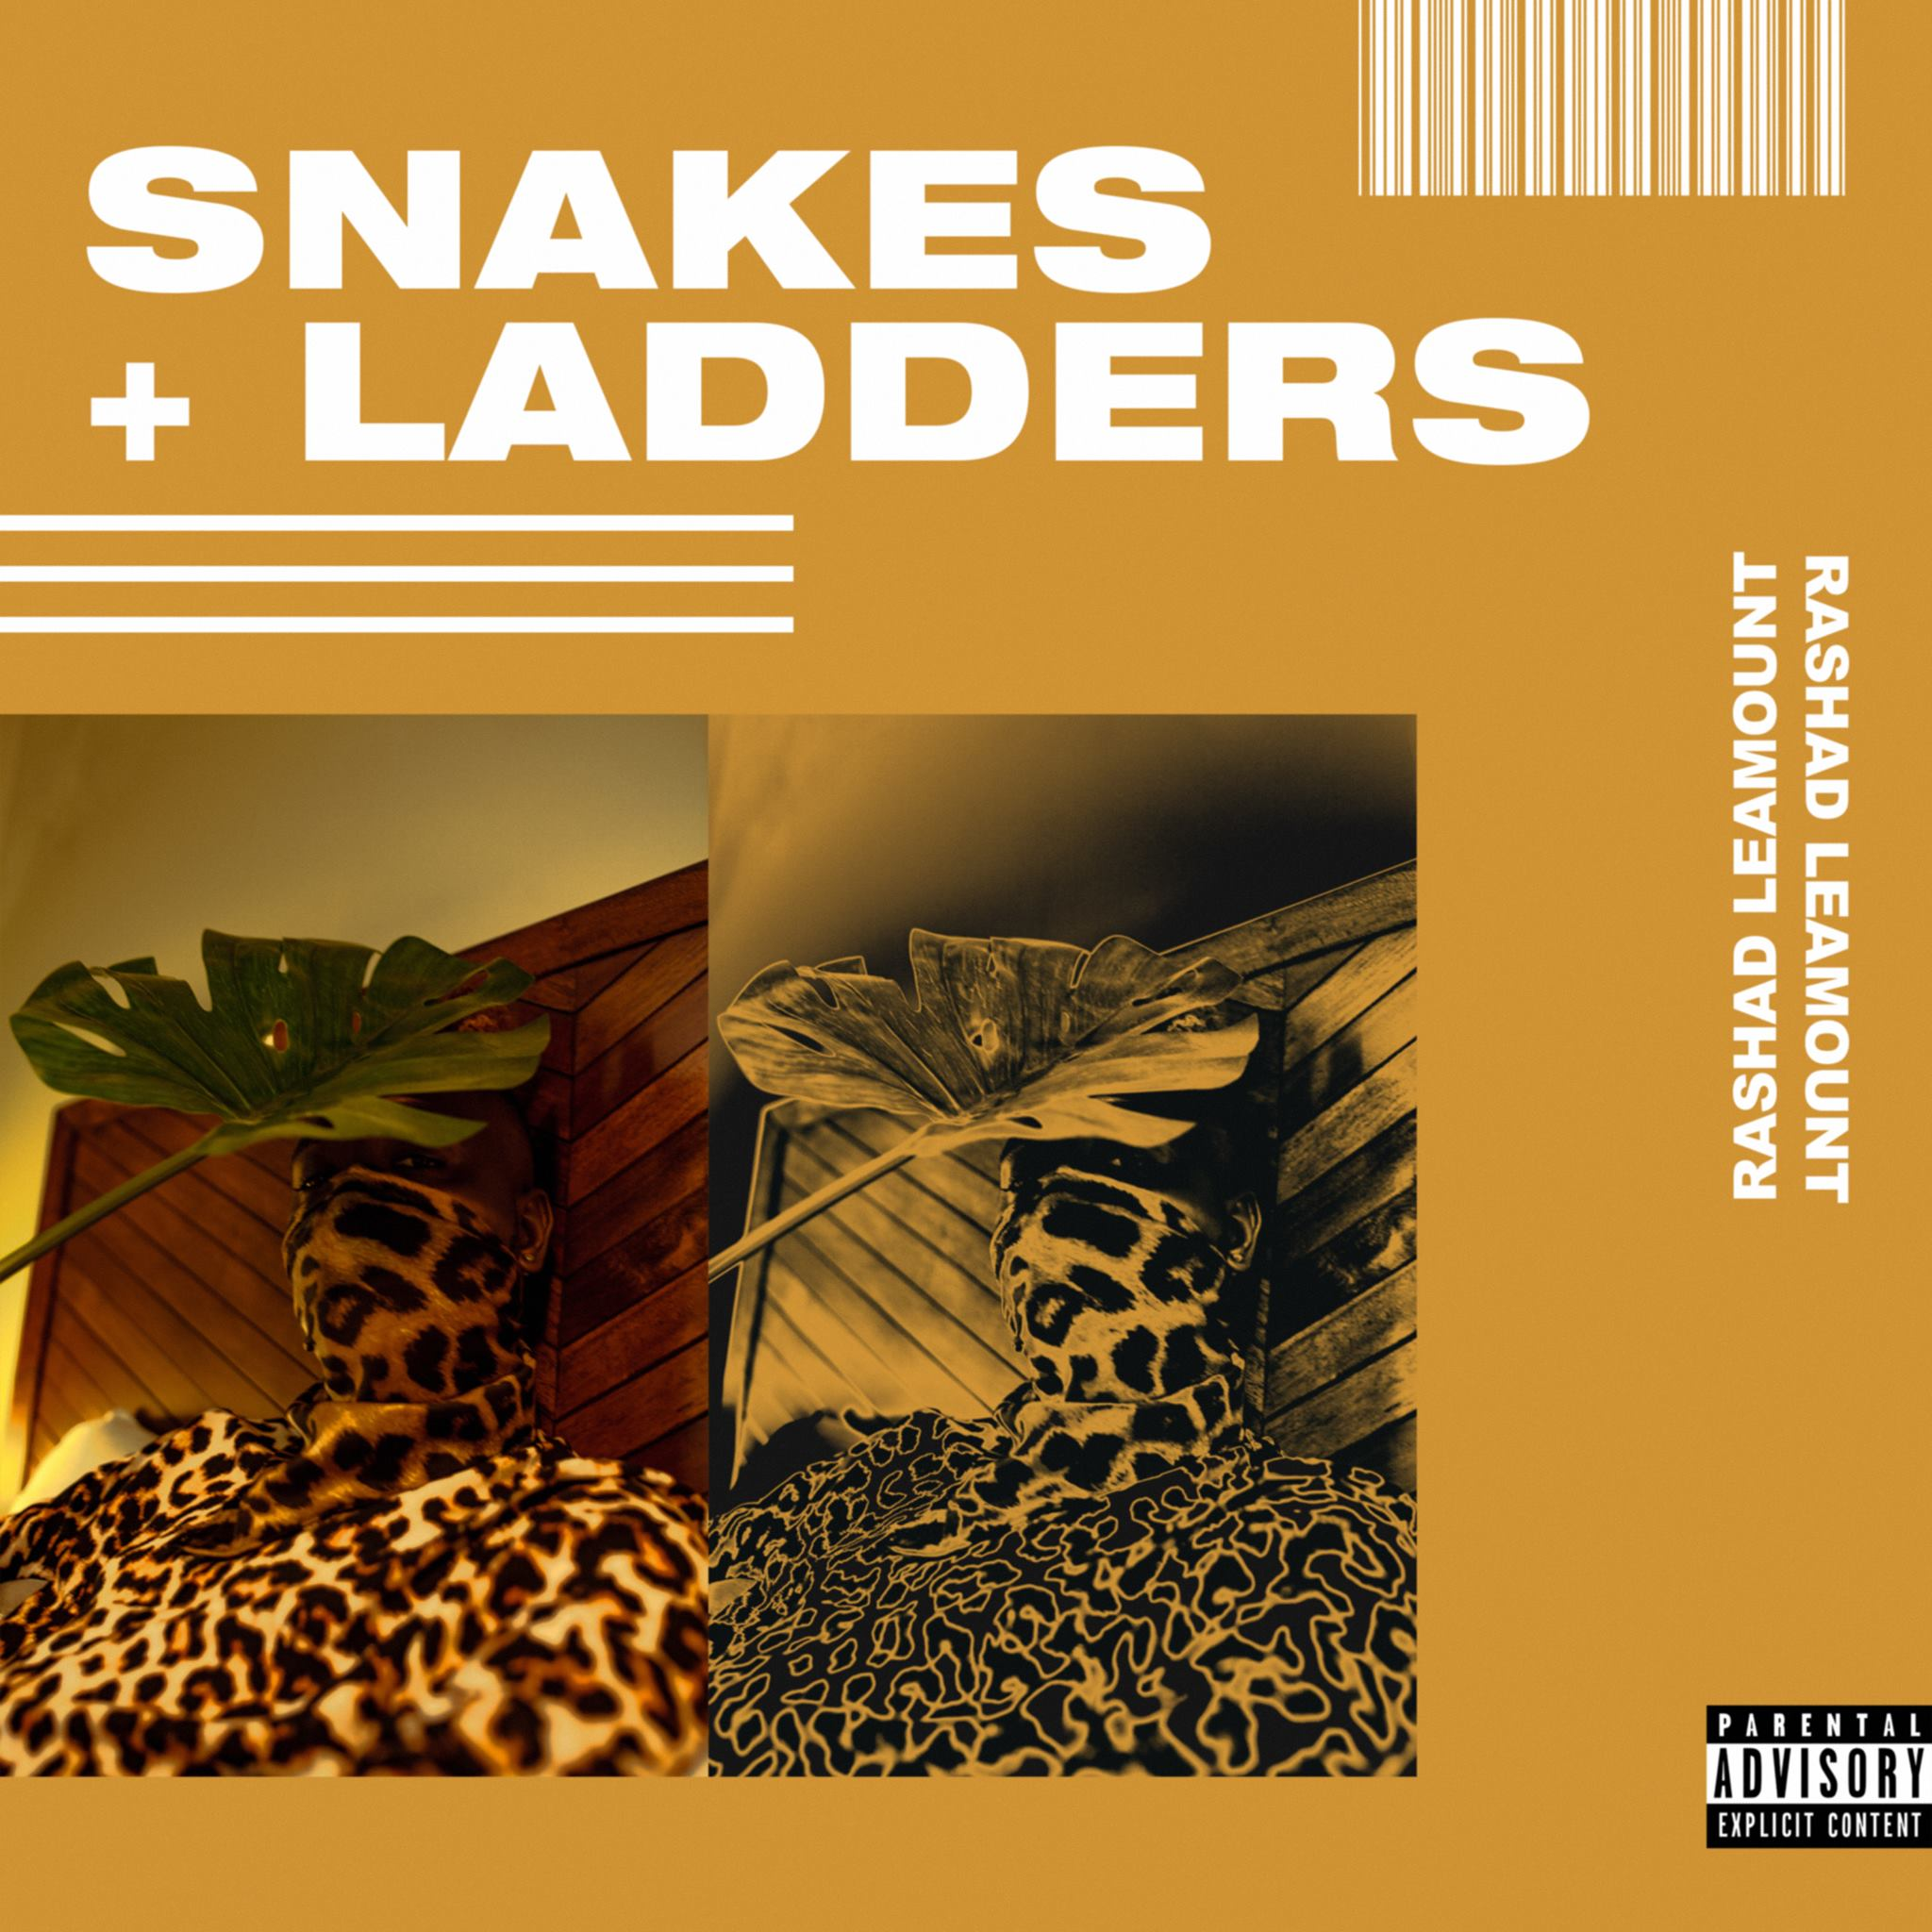 'Snakes + Ladders' cover artwork created by Fonte Designs. Image courtesy of artist Rashad Leamount.